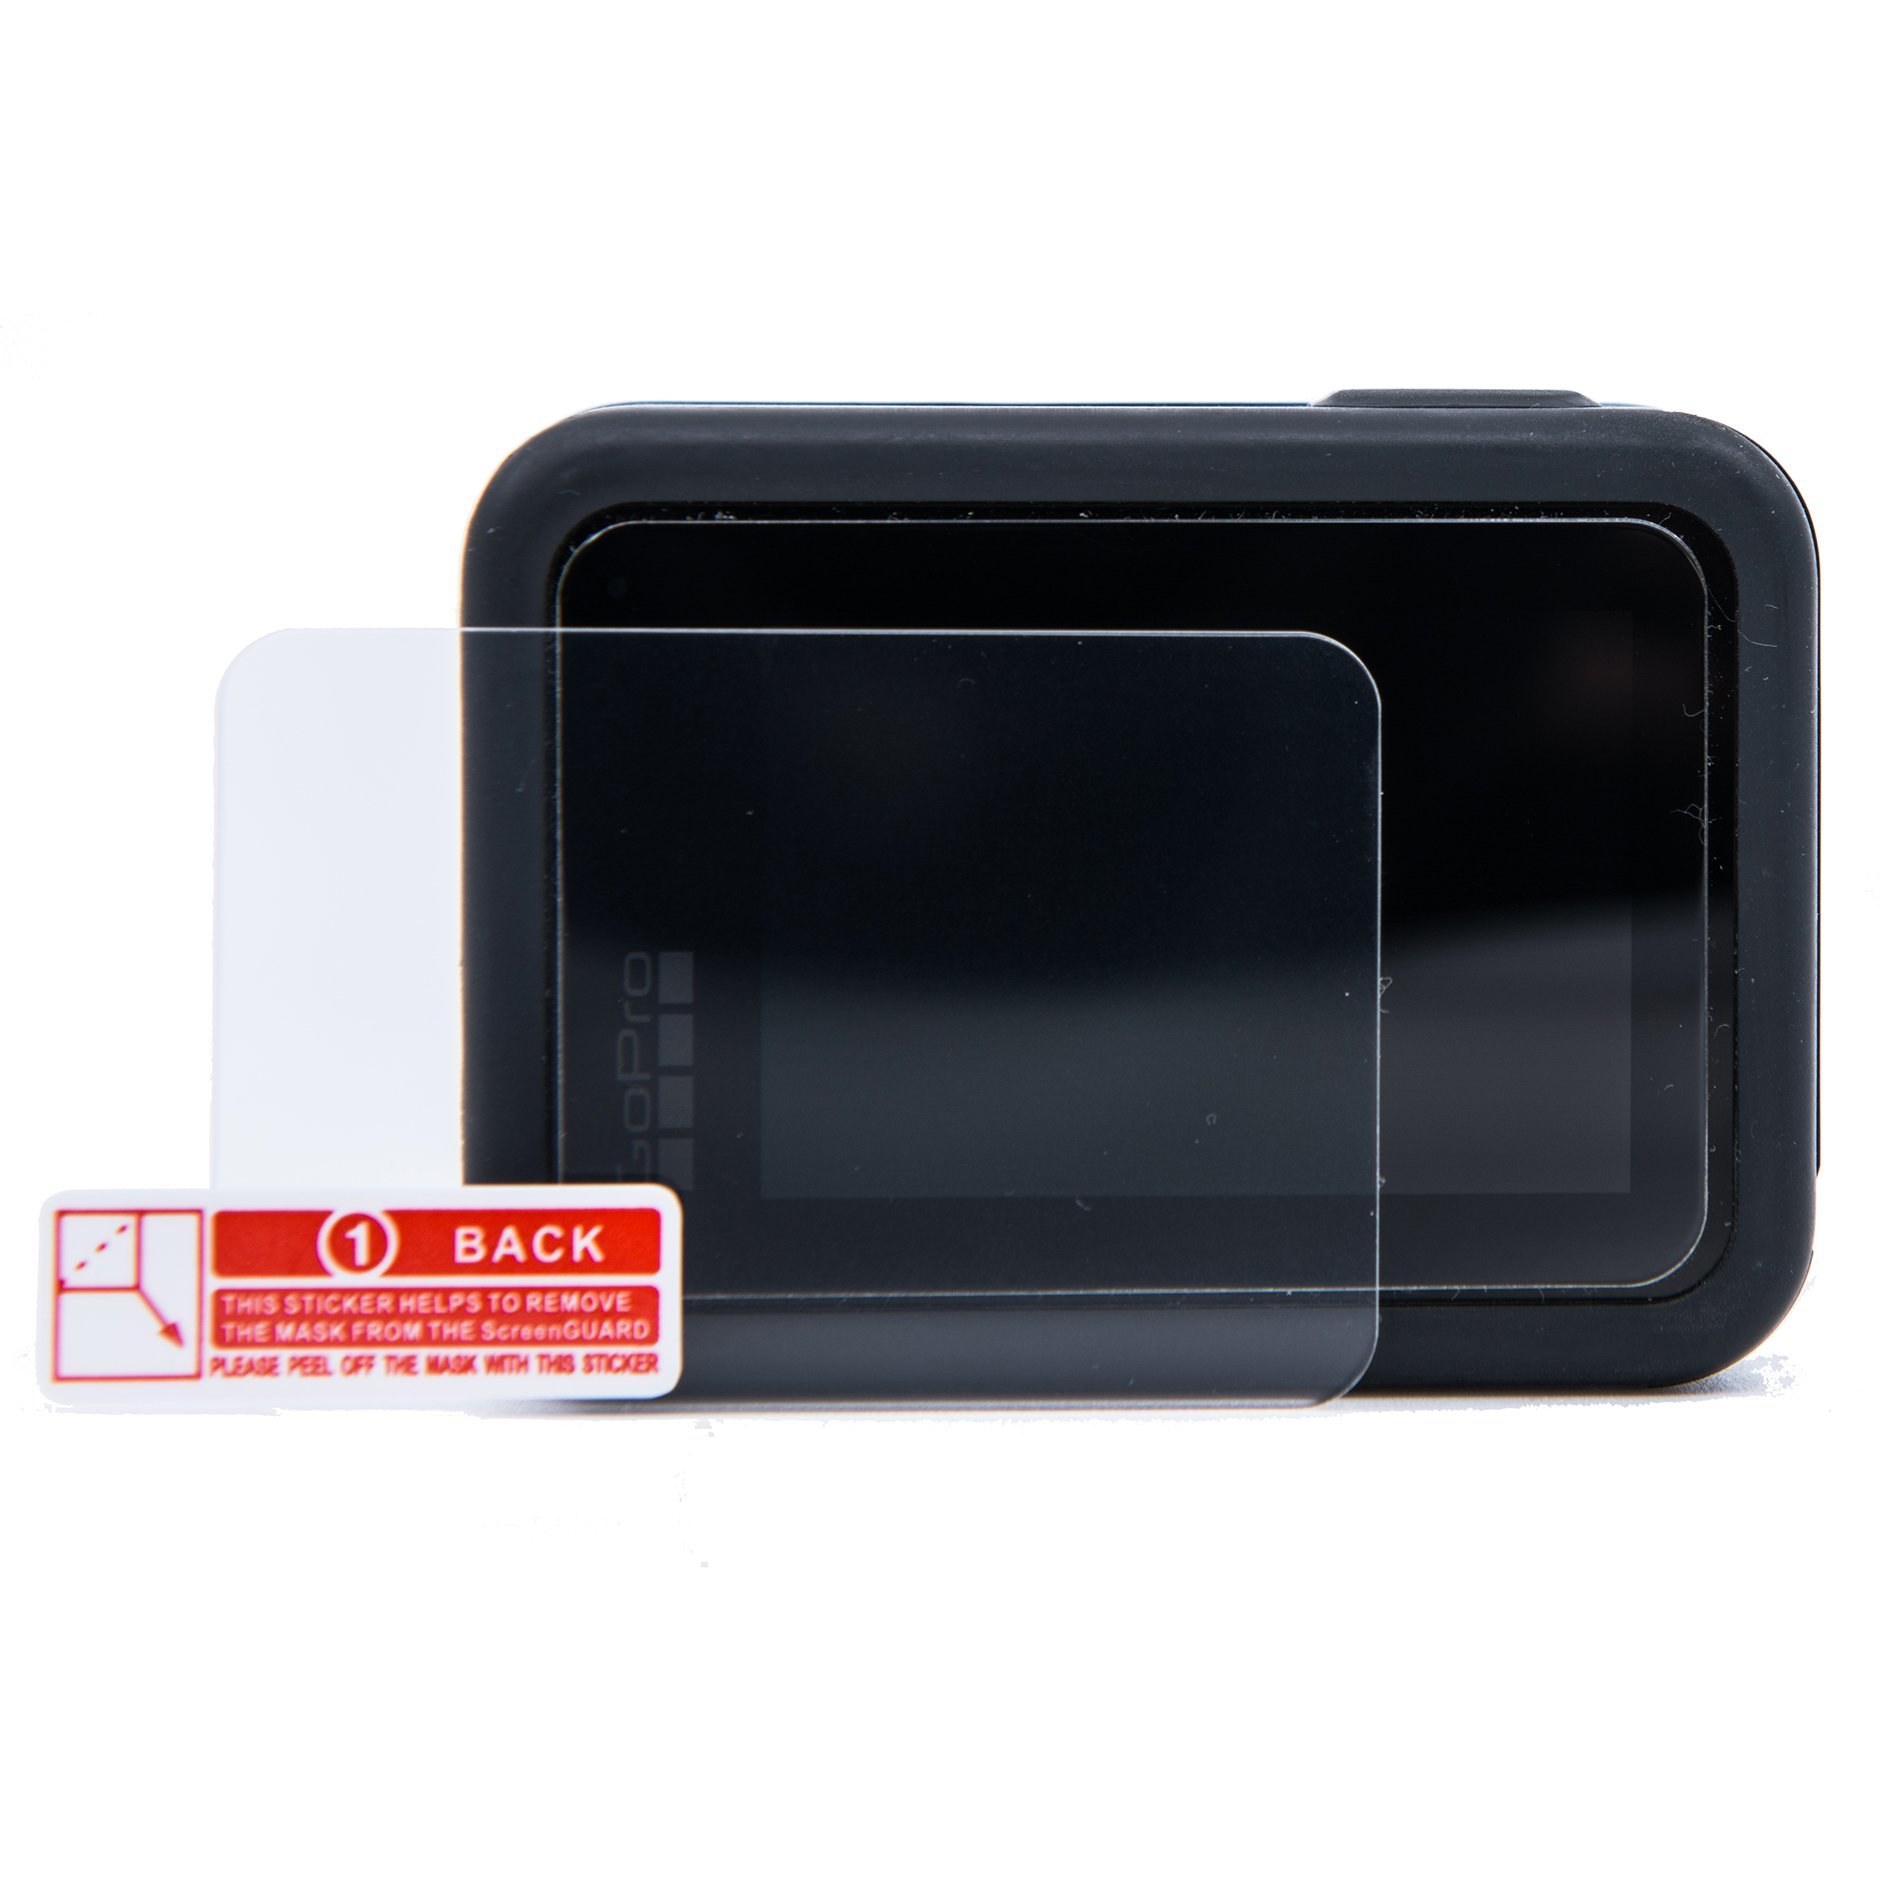 Camera Butter The ULTIMATE GoPro Hero LCD screen protector